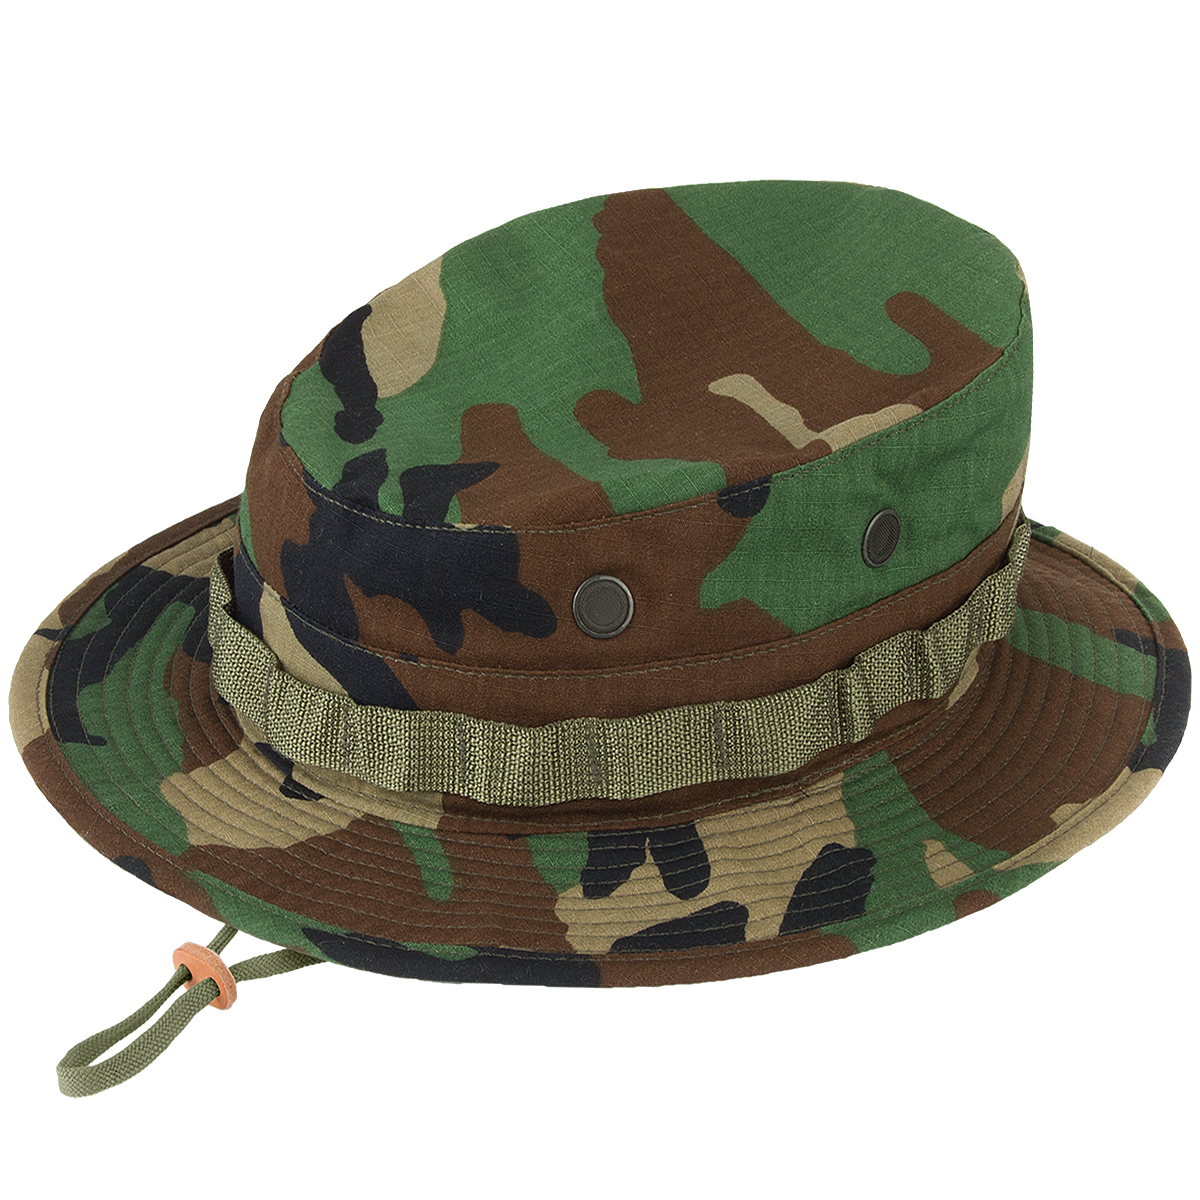 Details about Propper Boonie Hat Mens Cotton Military Security Giggle  Wide-Brim Woodland Camo b88590e53aa